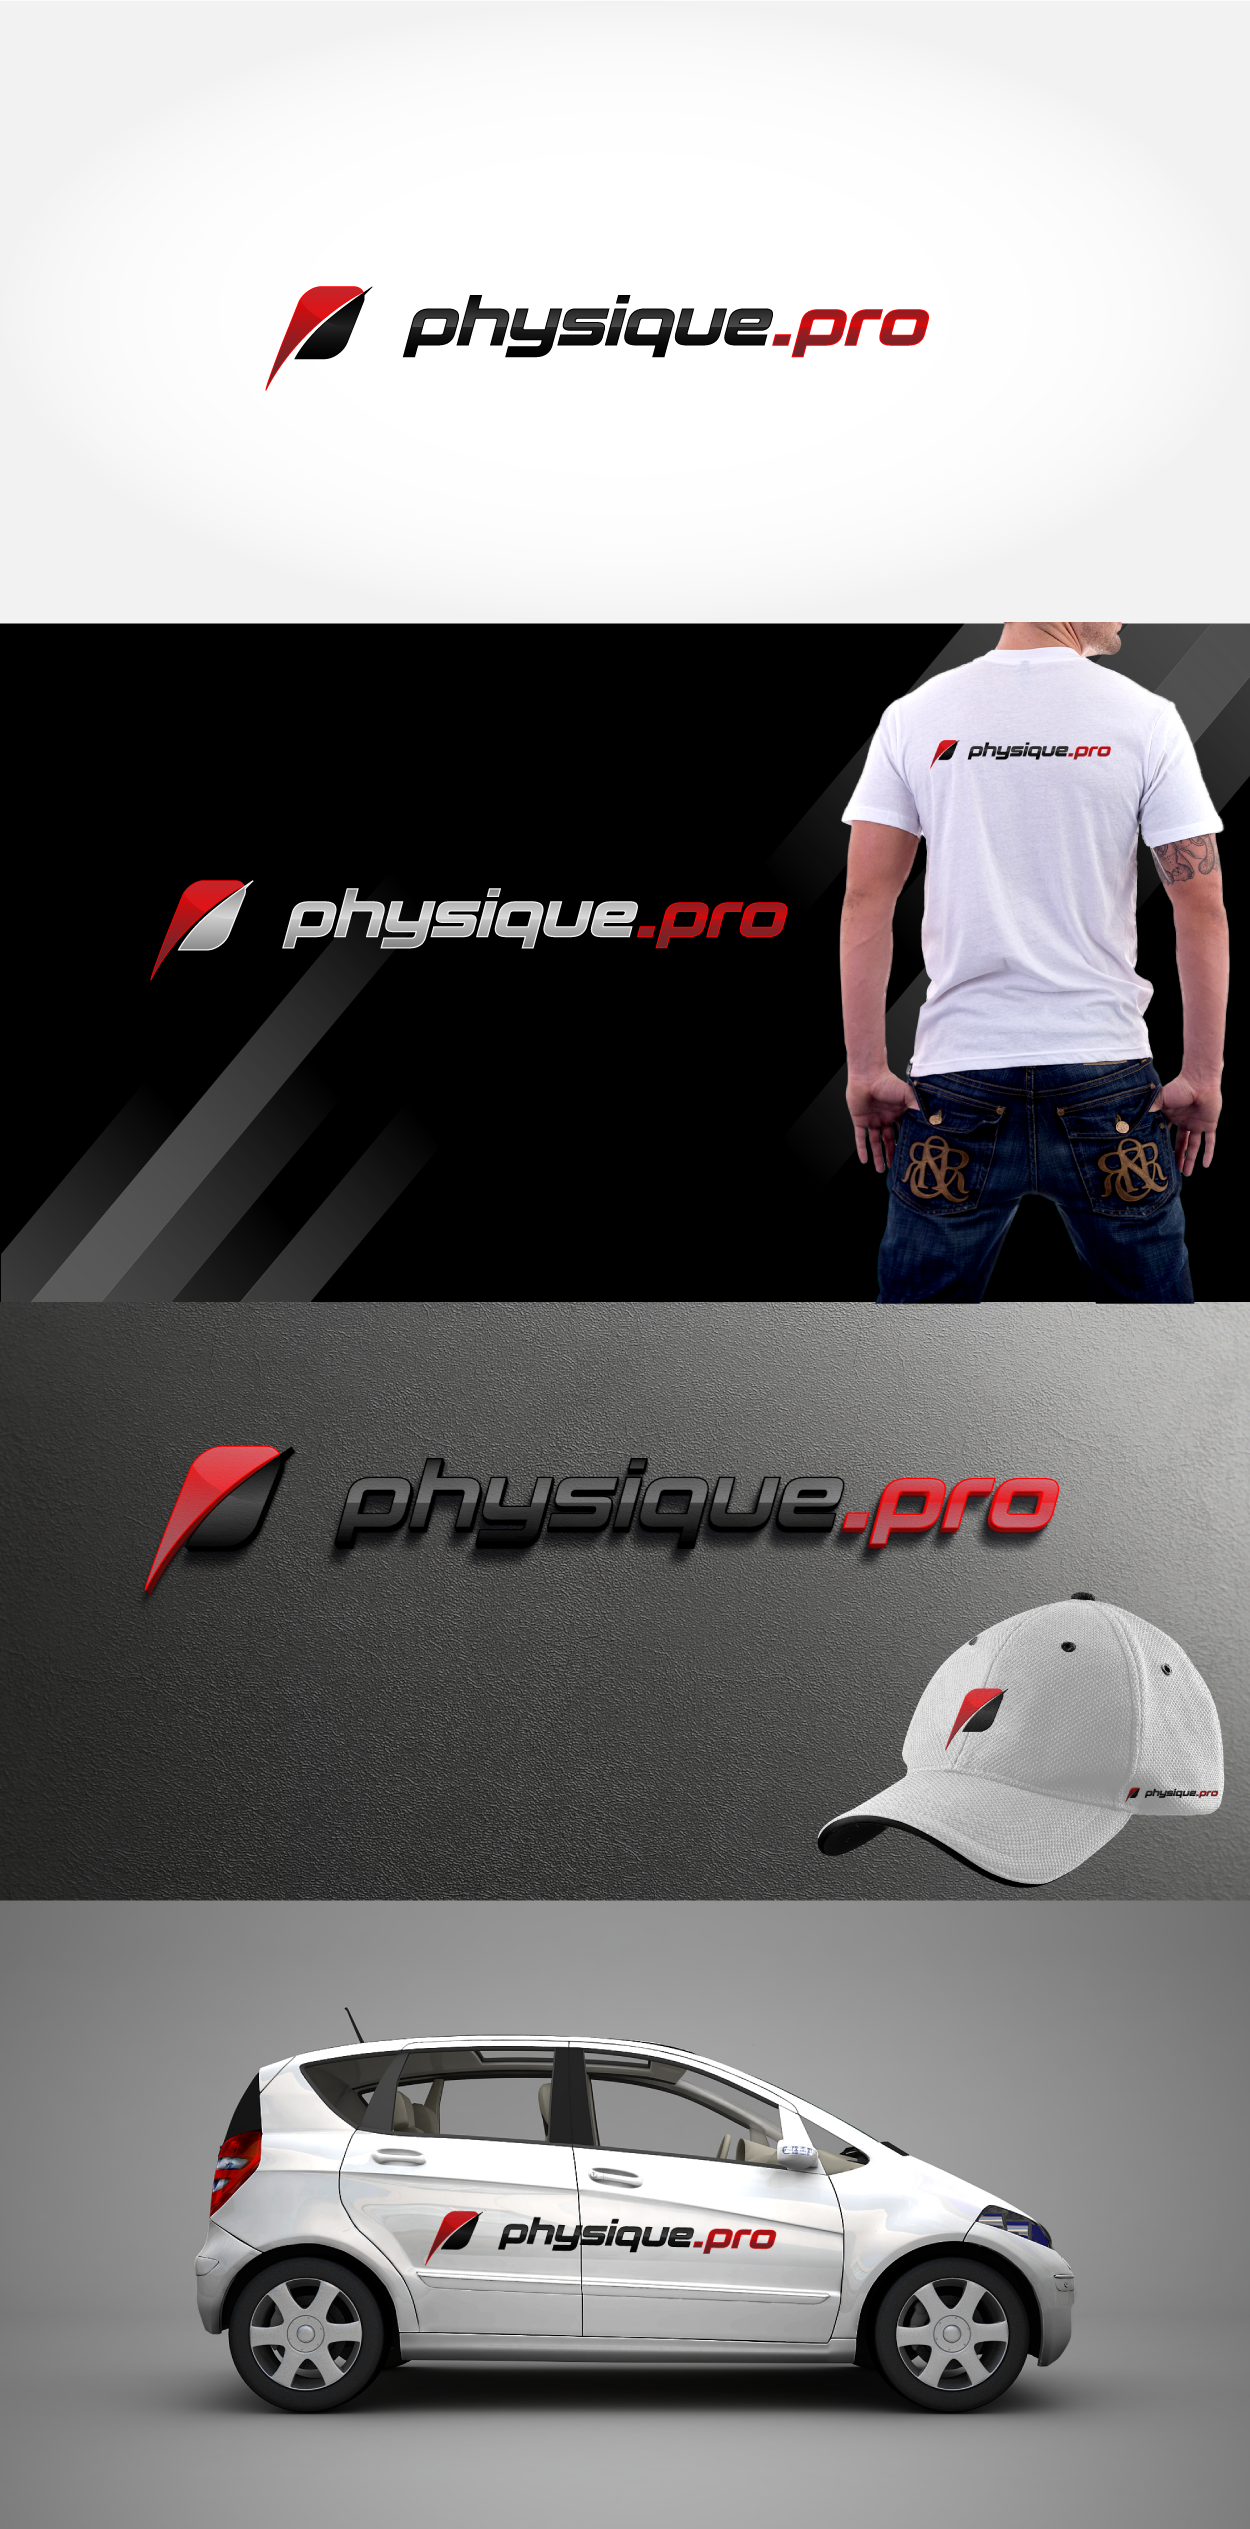 New logo wanted for physique.pro